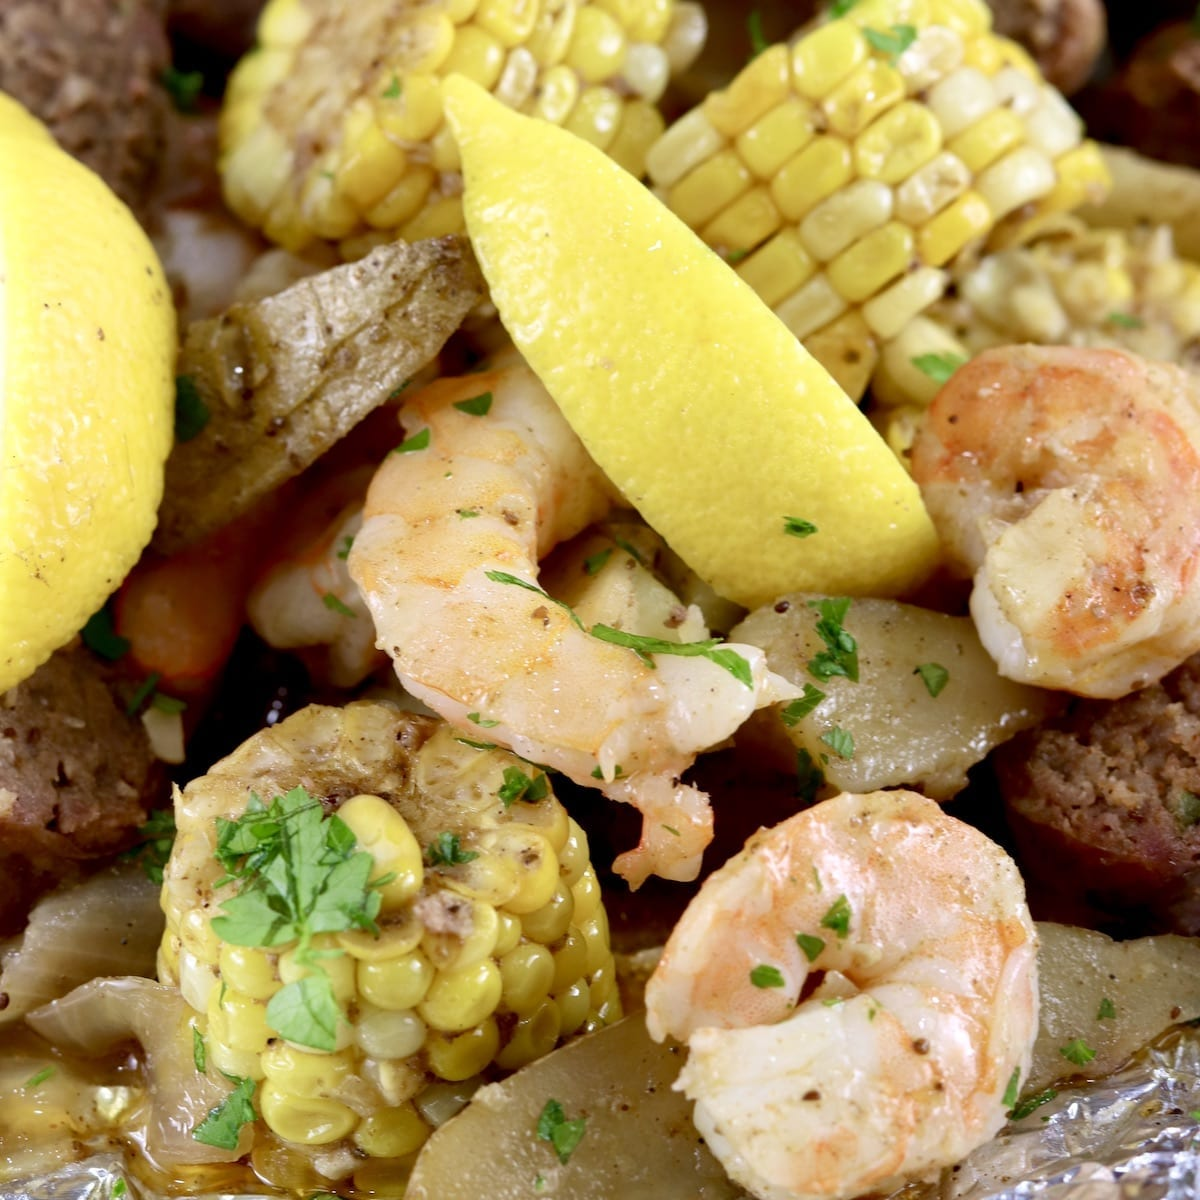 Shrimp Boil made in a foil packet with corn on the cob, potatoes, onions, smoked sausage, lemon